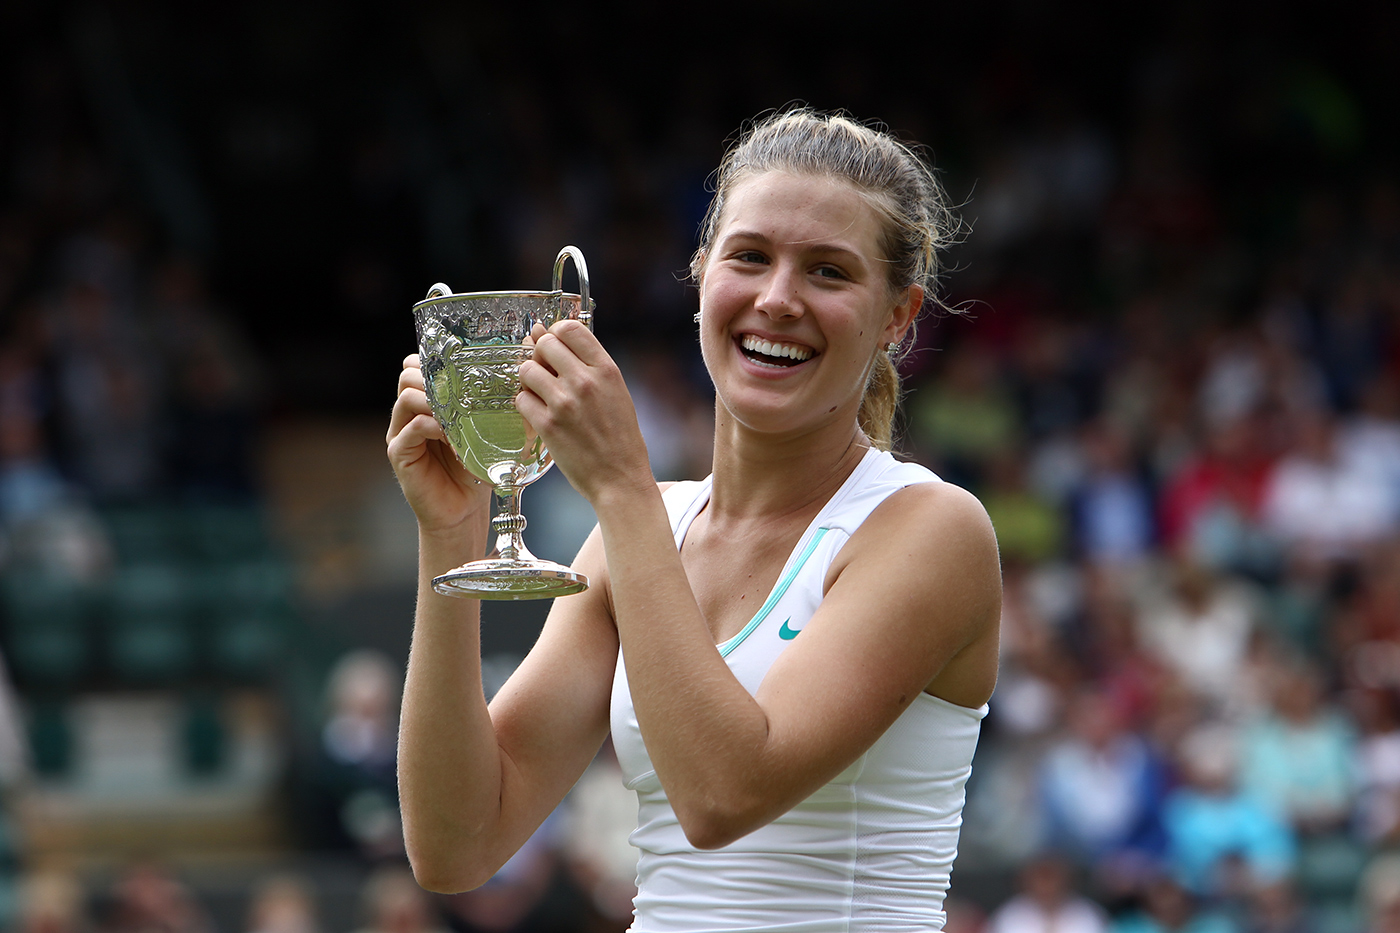 wonderful eugenie bouchard fantastic cup with smile face pose desktop mobile hd pictures free at wimbledon